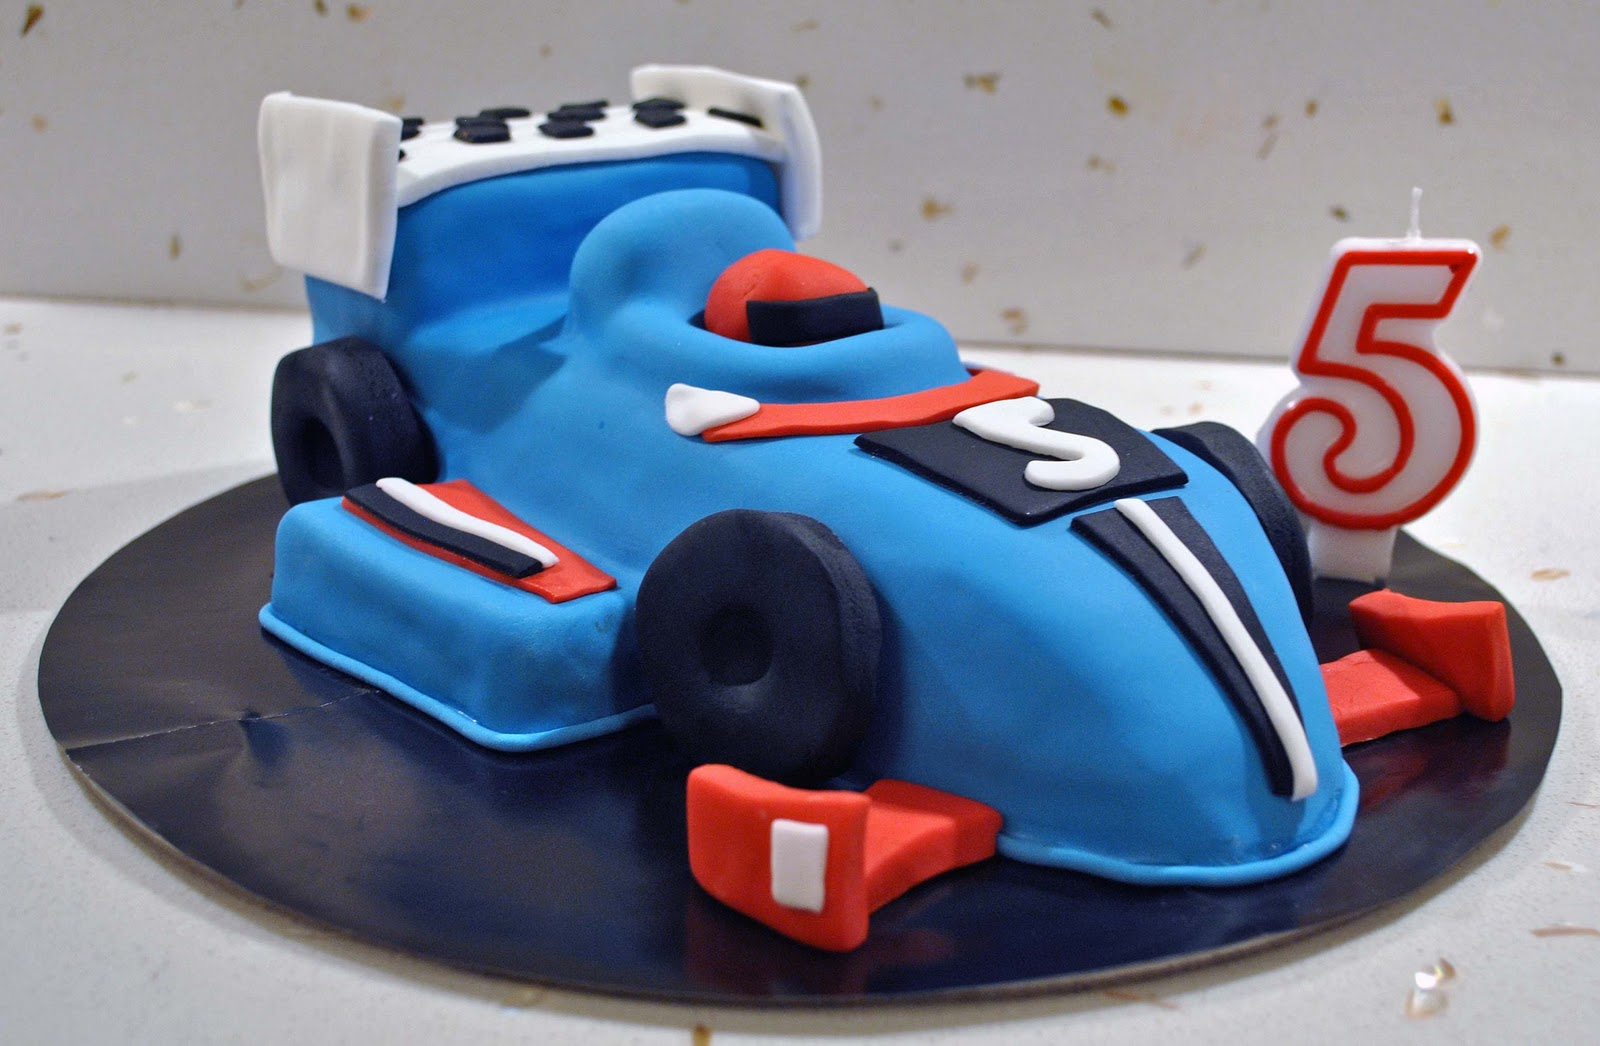 How To Make A Carved Car Cake